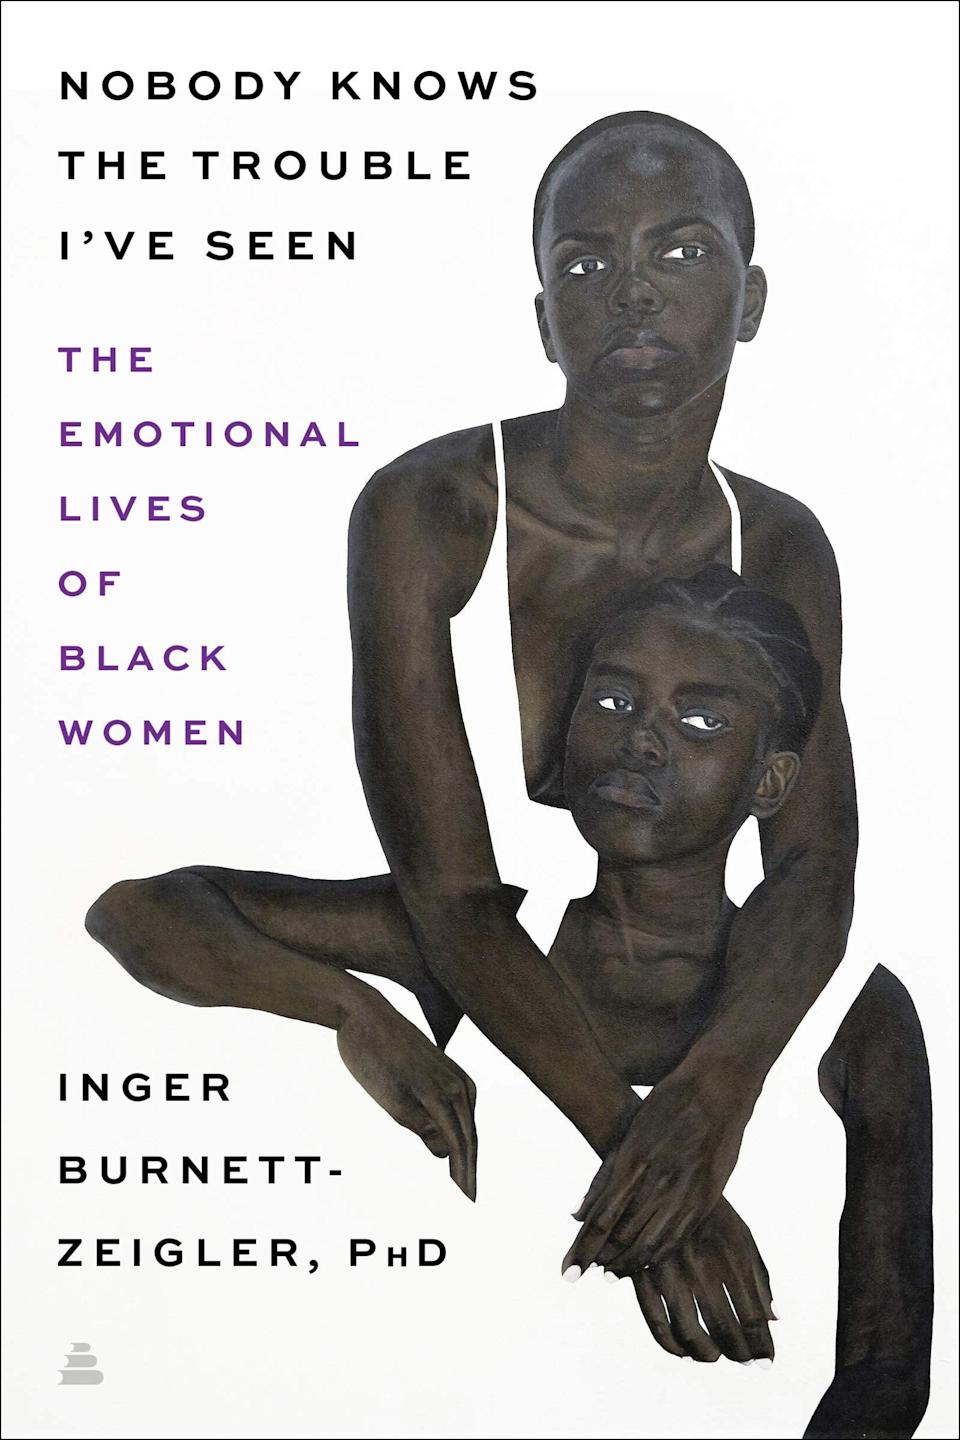 <p>Clinical psychologist Dr. Inger Burnett-Zeigler's <span><strong>Nobody Knows the Trouble I've Seen</strong></span> is a potentially life-saving book that candidly discusses the emotional and physical struggles many Black women face. At the heart of this powerful book is a message about addressing the needs of Black women, and the importance of discussing topics like self-care and mental health. </p> <p><em>Out June 29</em></p>